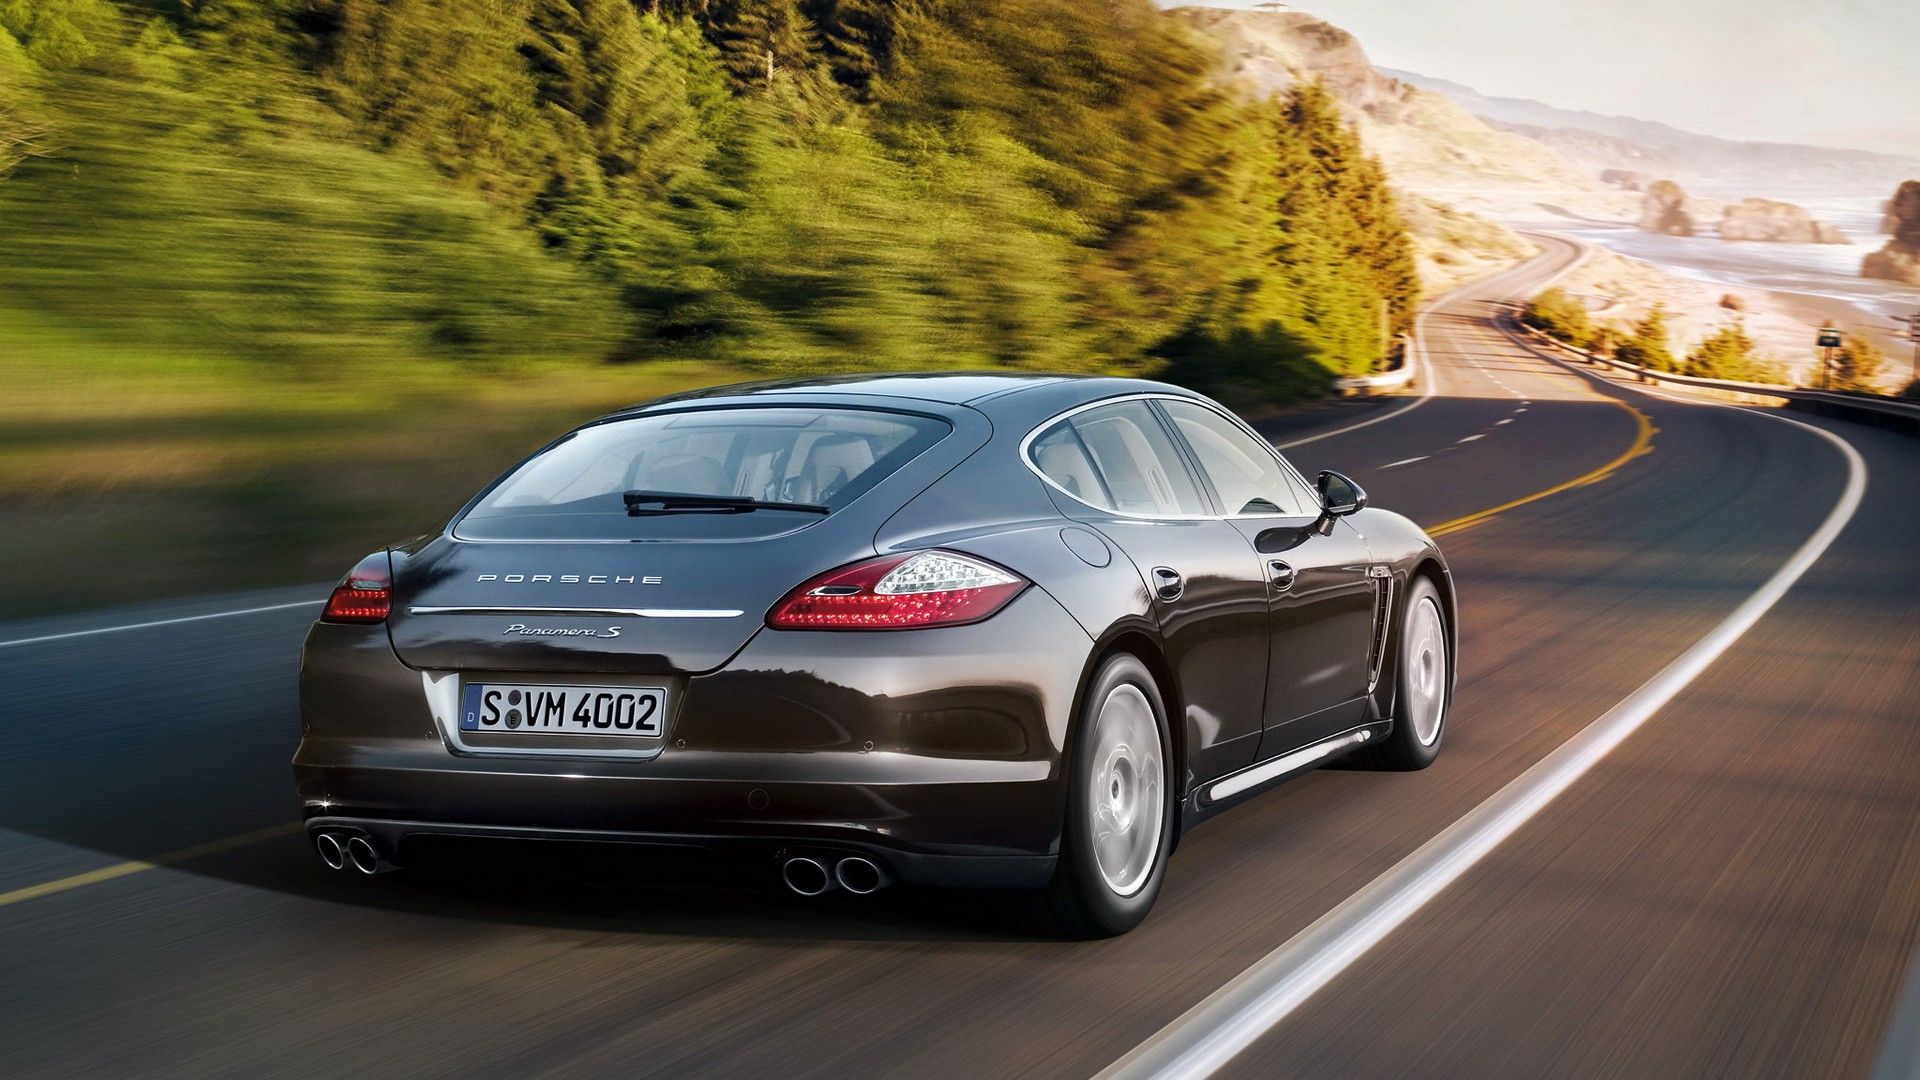 HD Porsche Panamera S Wallpaper   HD 1920x1080